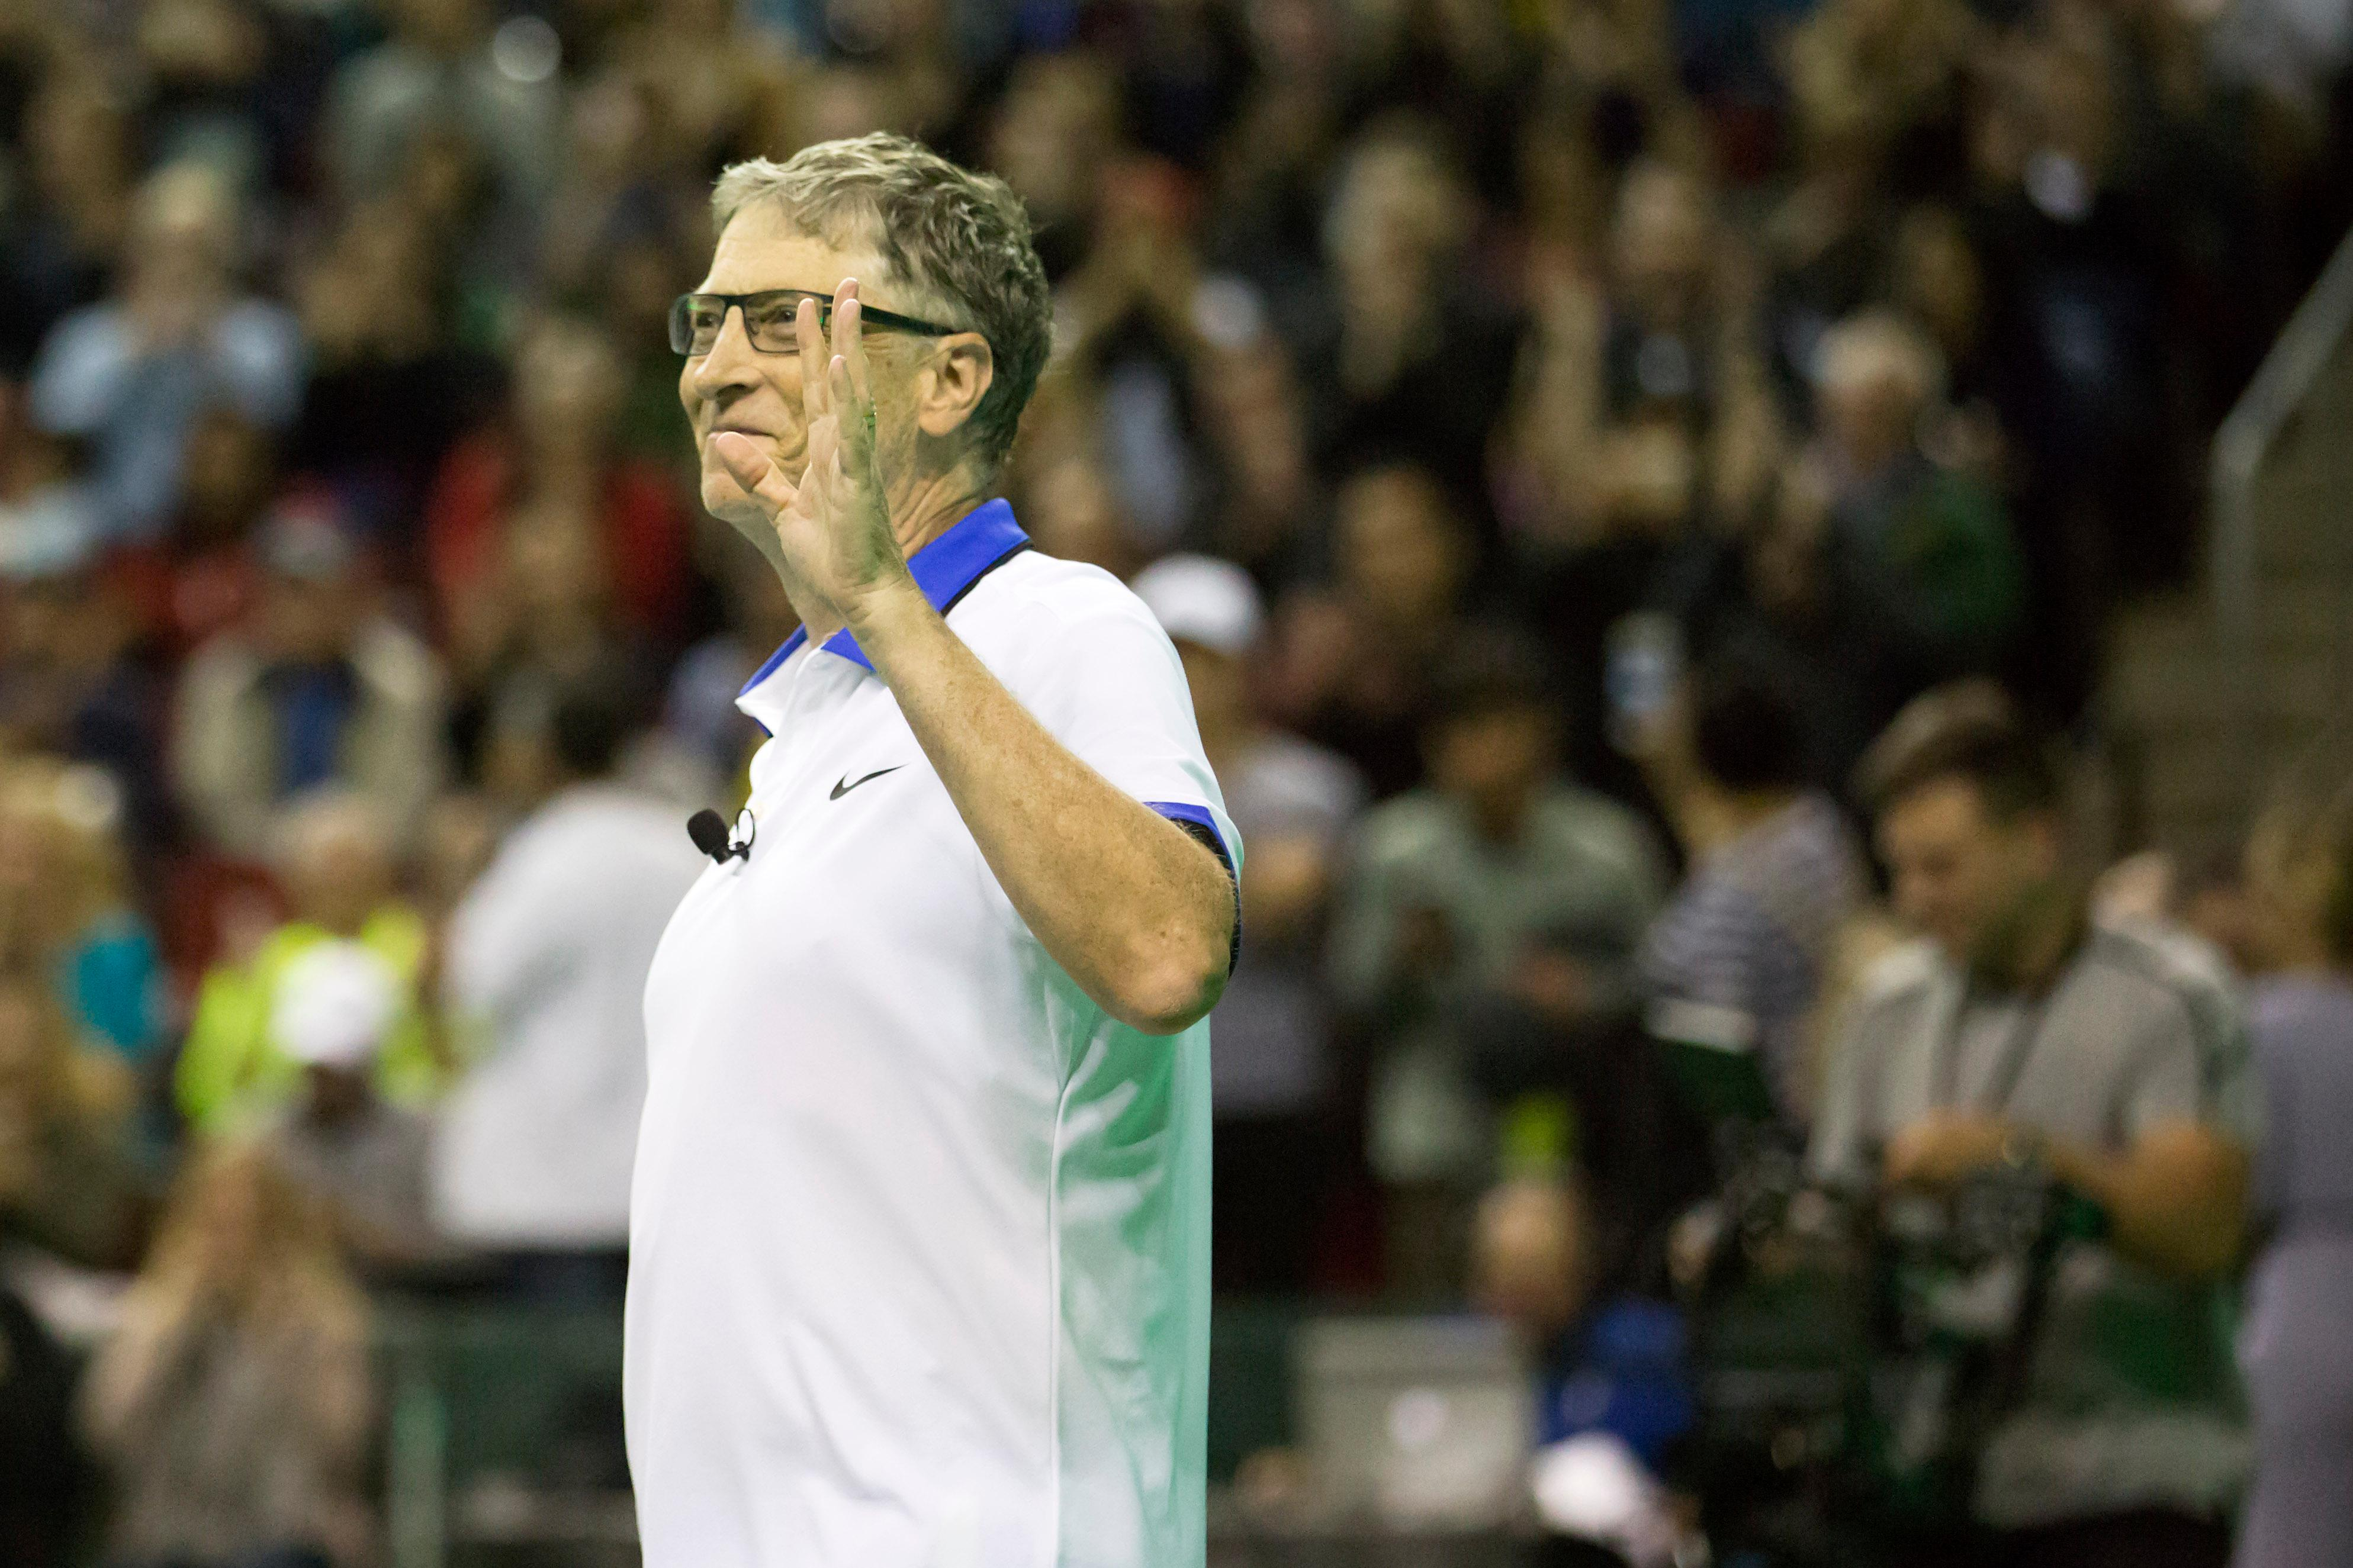 Roger Federer made his inaugural visit to Seattle Saturday night (April 29) to play a doubles match with tech titan Bill Gates, against American tennis pro John Isner and Pearl Jam's Mike McCready. The game was part of the Match for Africa 4 Seattle event, benefitting the Roger Federer Foundation. RFF supports education projects in Africa, and Federer's home country of Switzerland. After a nail-biting (and highly entertaining) match, Team Gaterer ended up sweeping Team McIsner, 6-4. (Image: Sy Bean  / Seattle Refined)